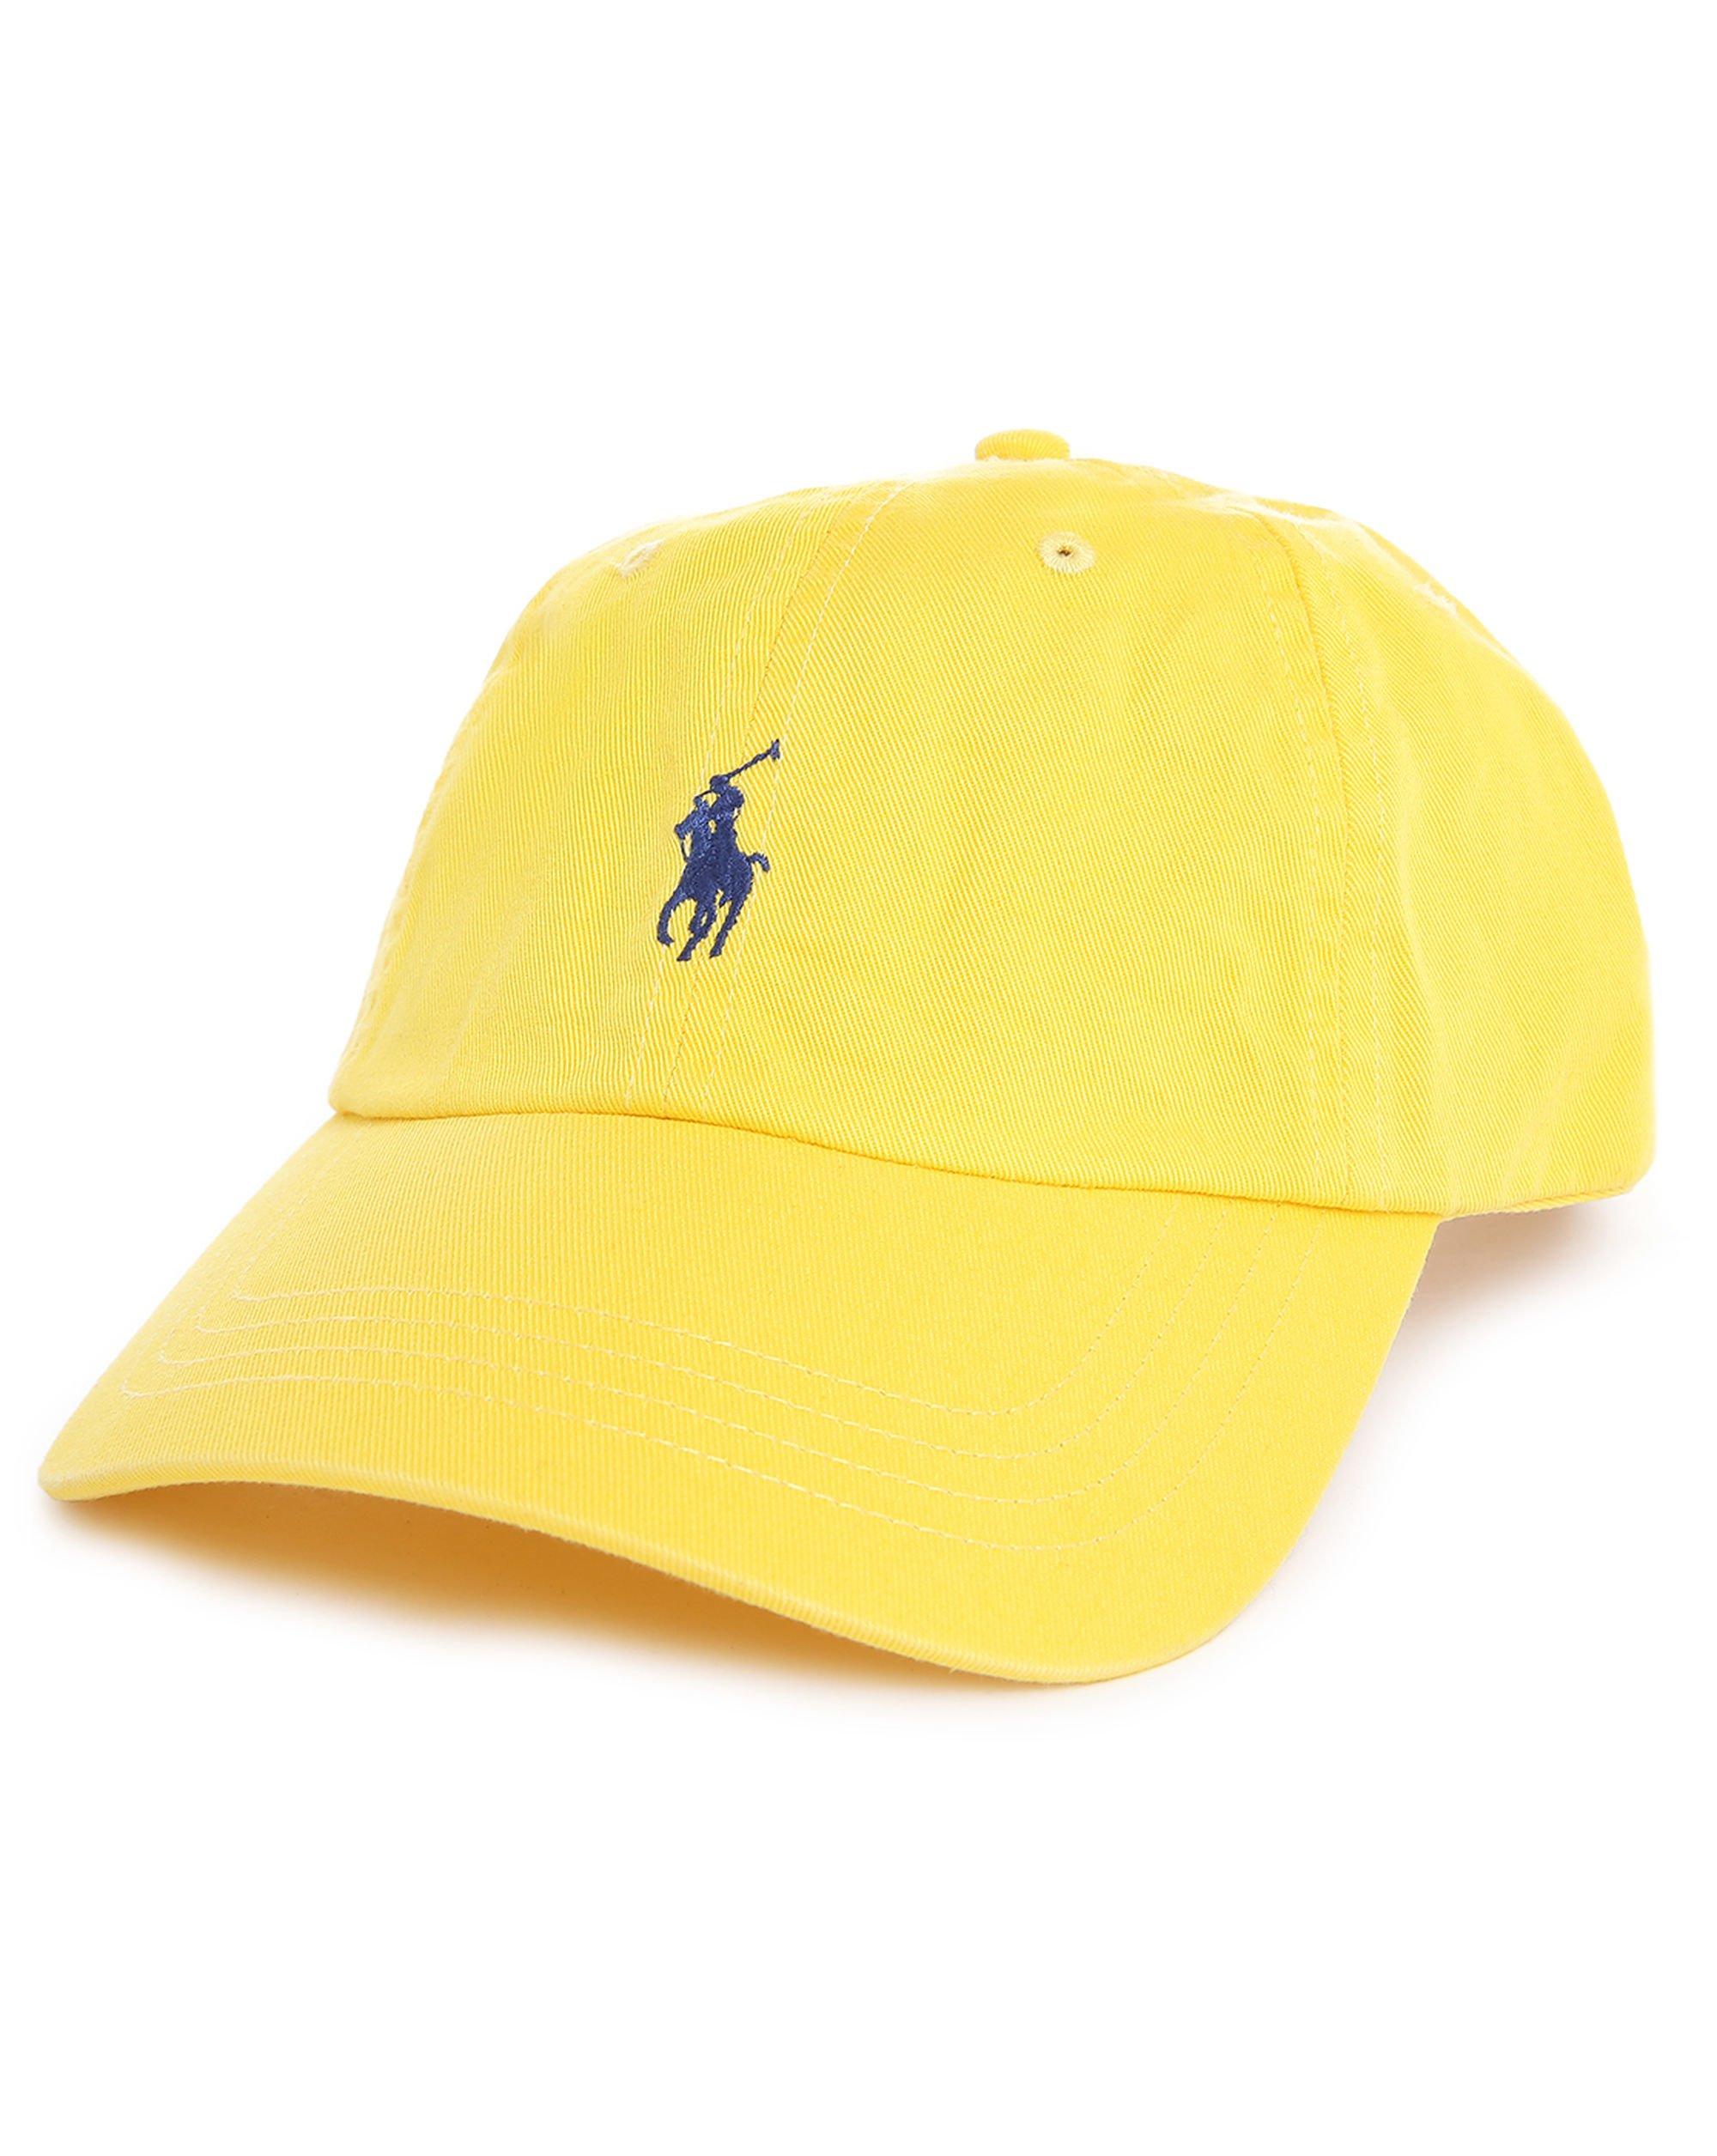 Image gallery yellow cap for Polo fishing hat